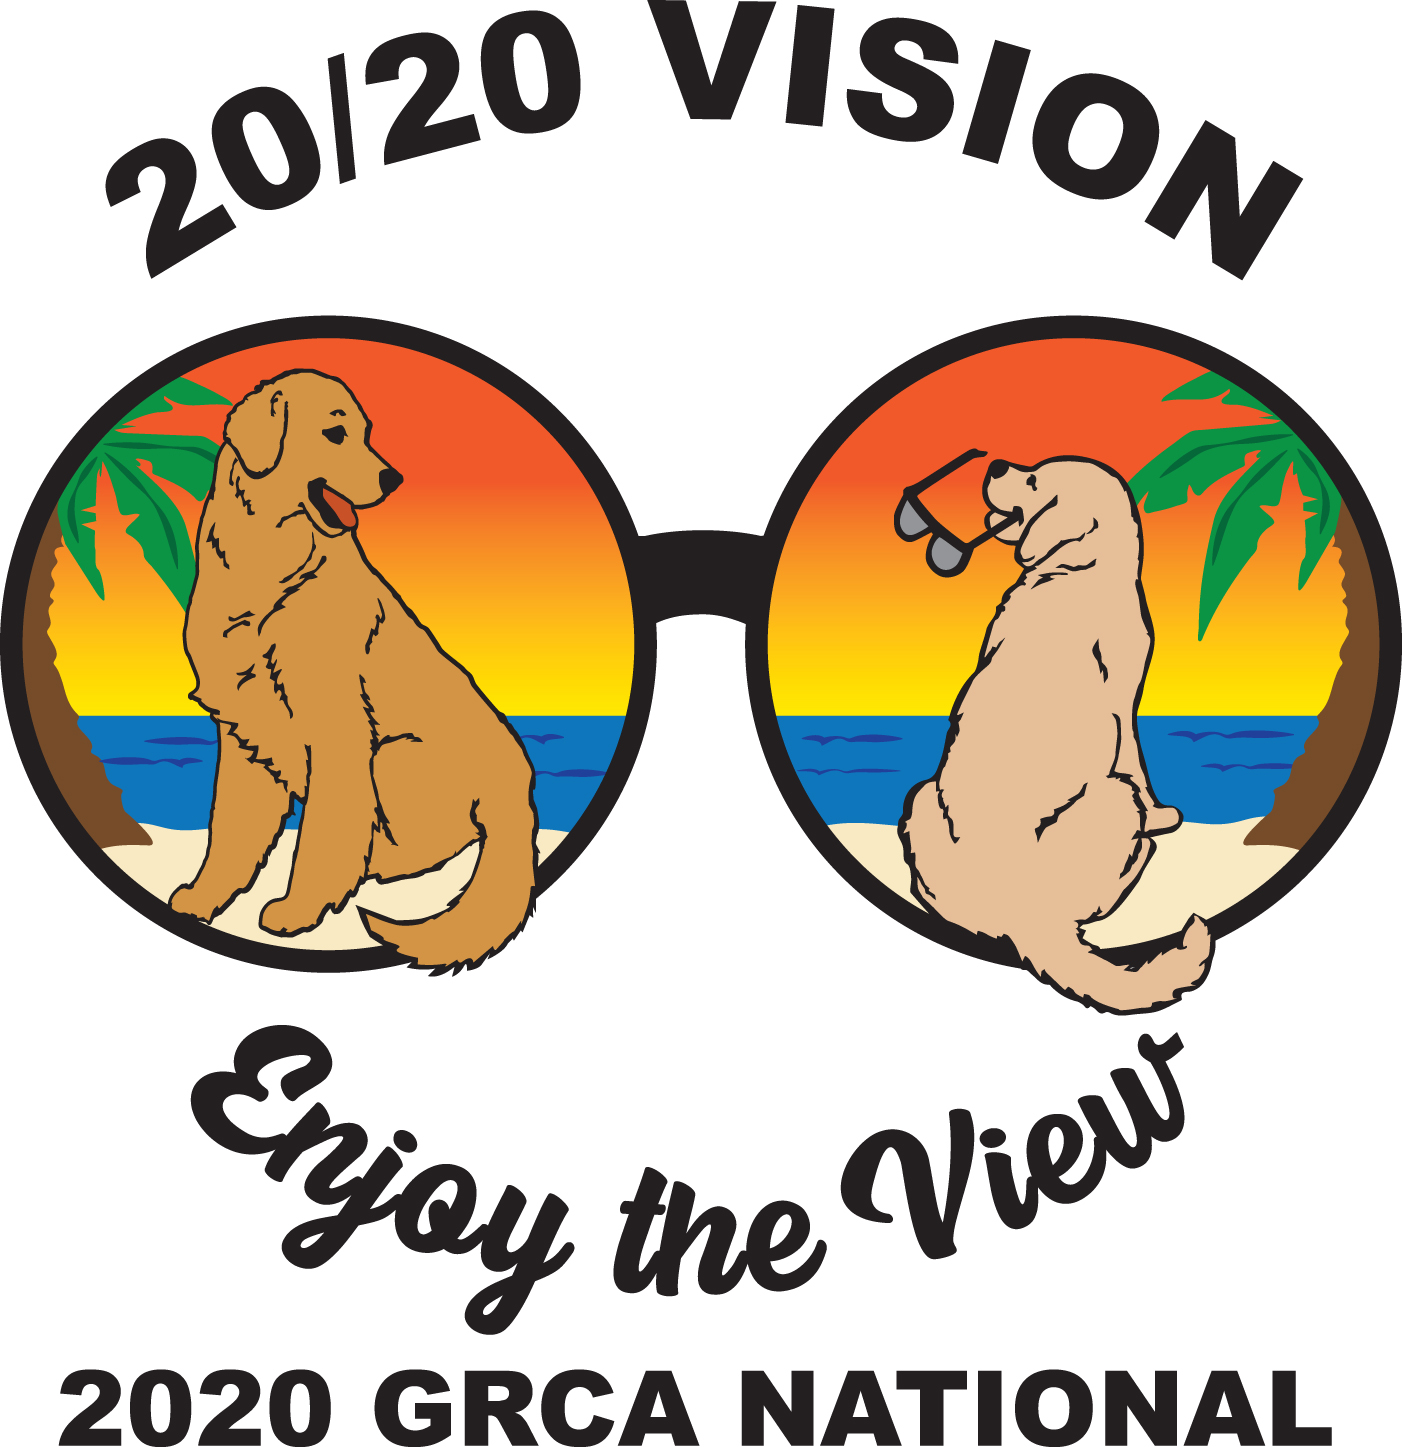 Mid-Florida Golden Retriever Club – Encourages ownership and